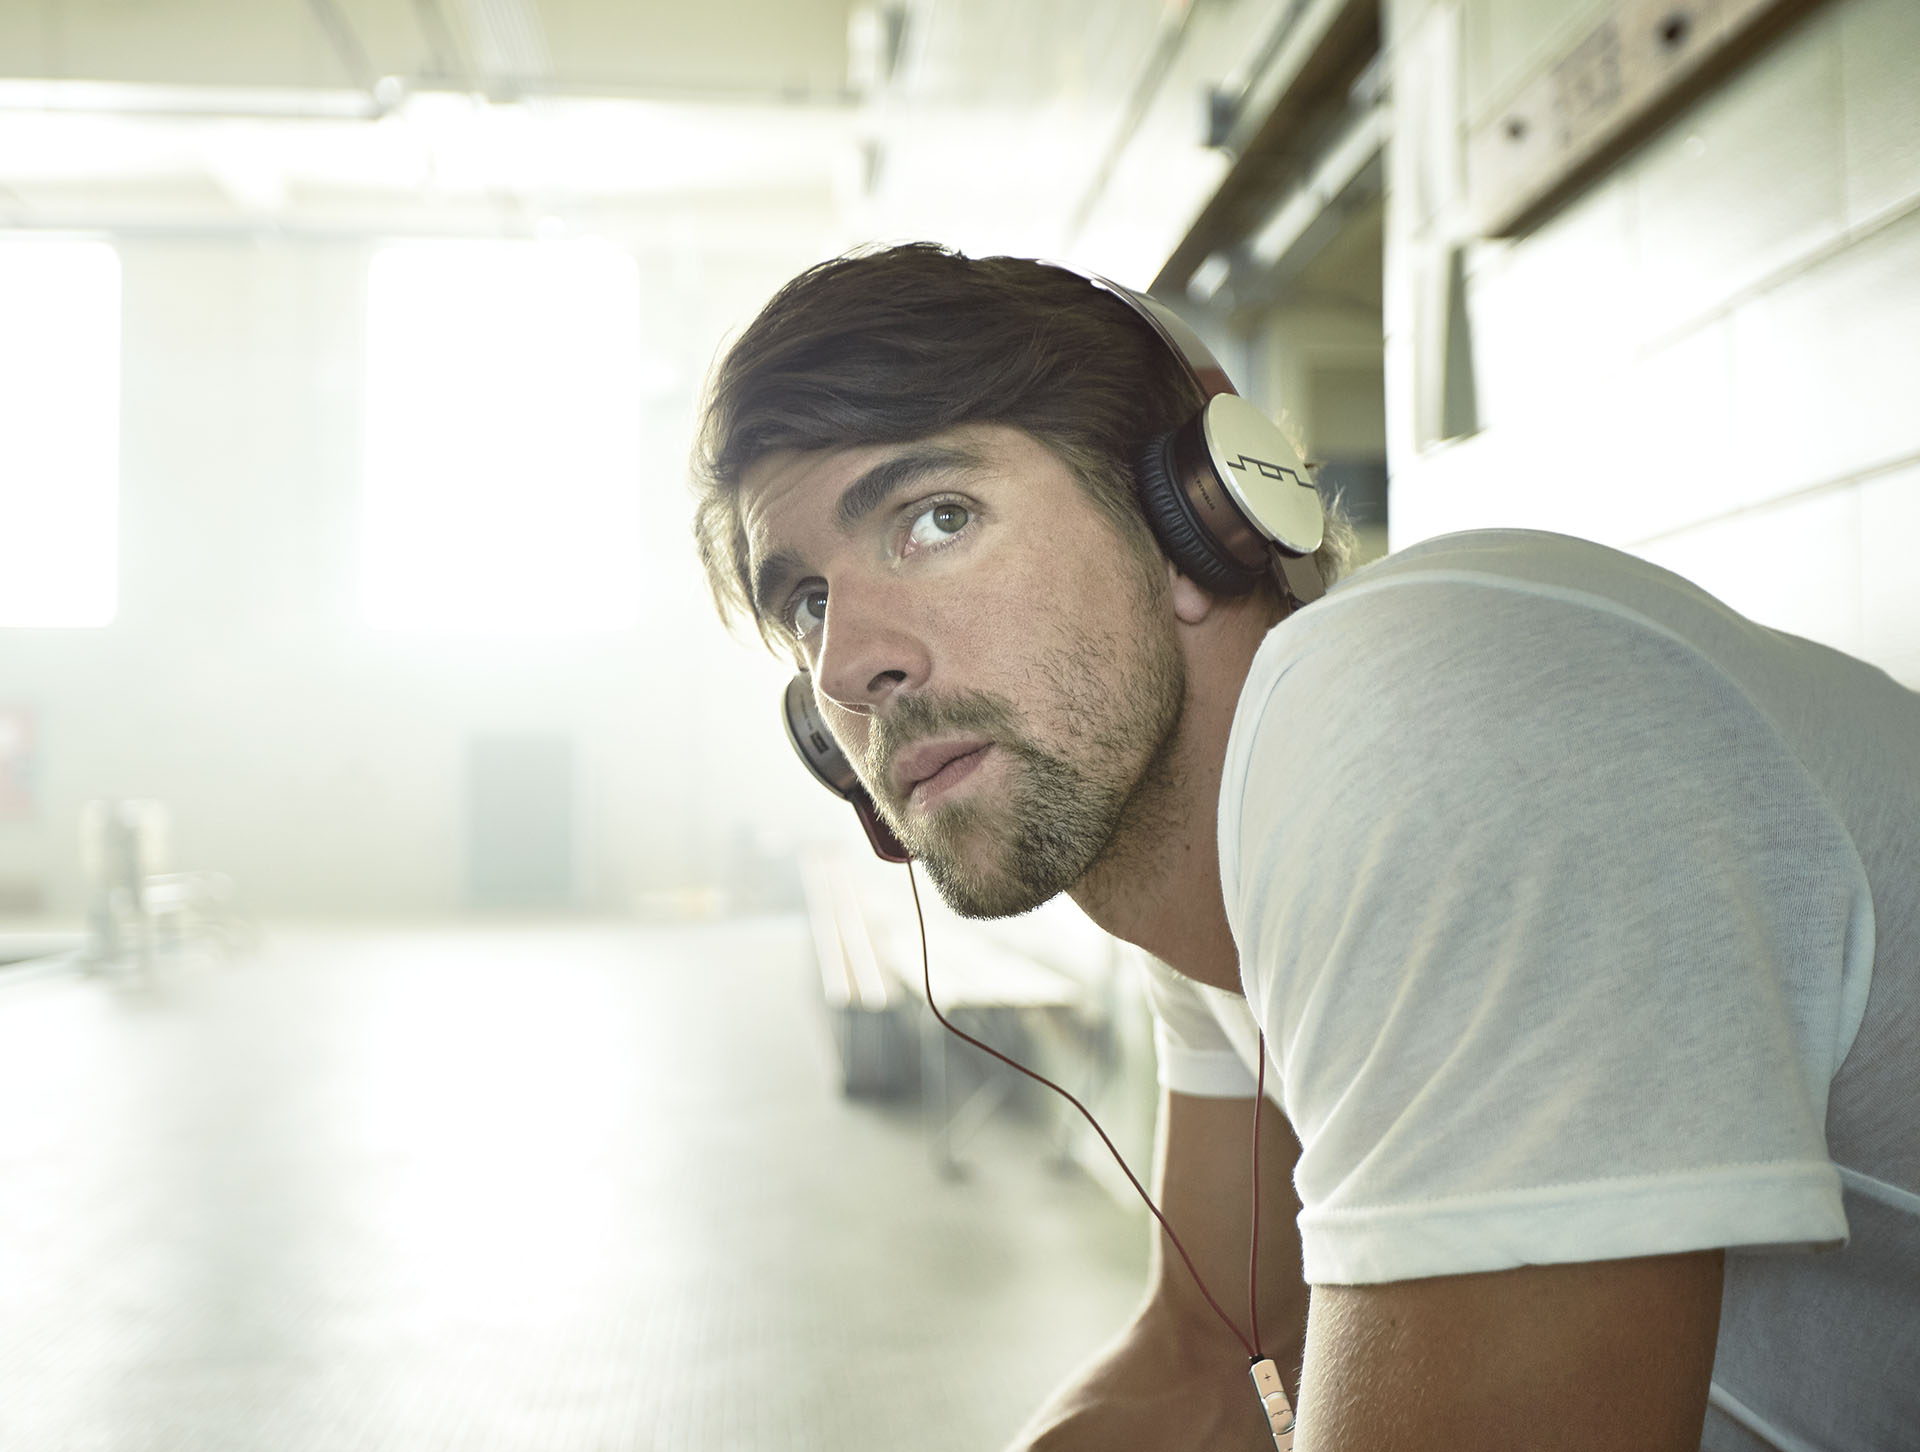 Man staring at the camera wearing headphones